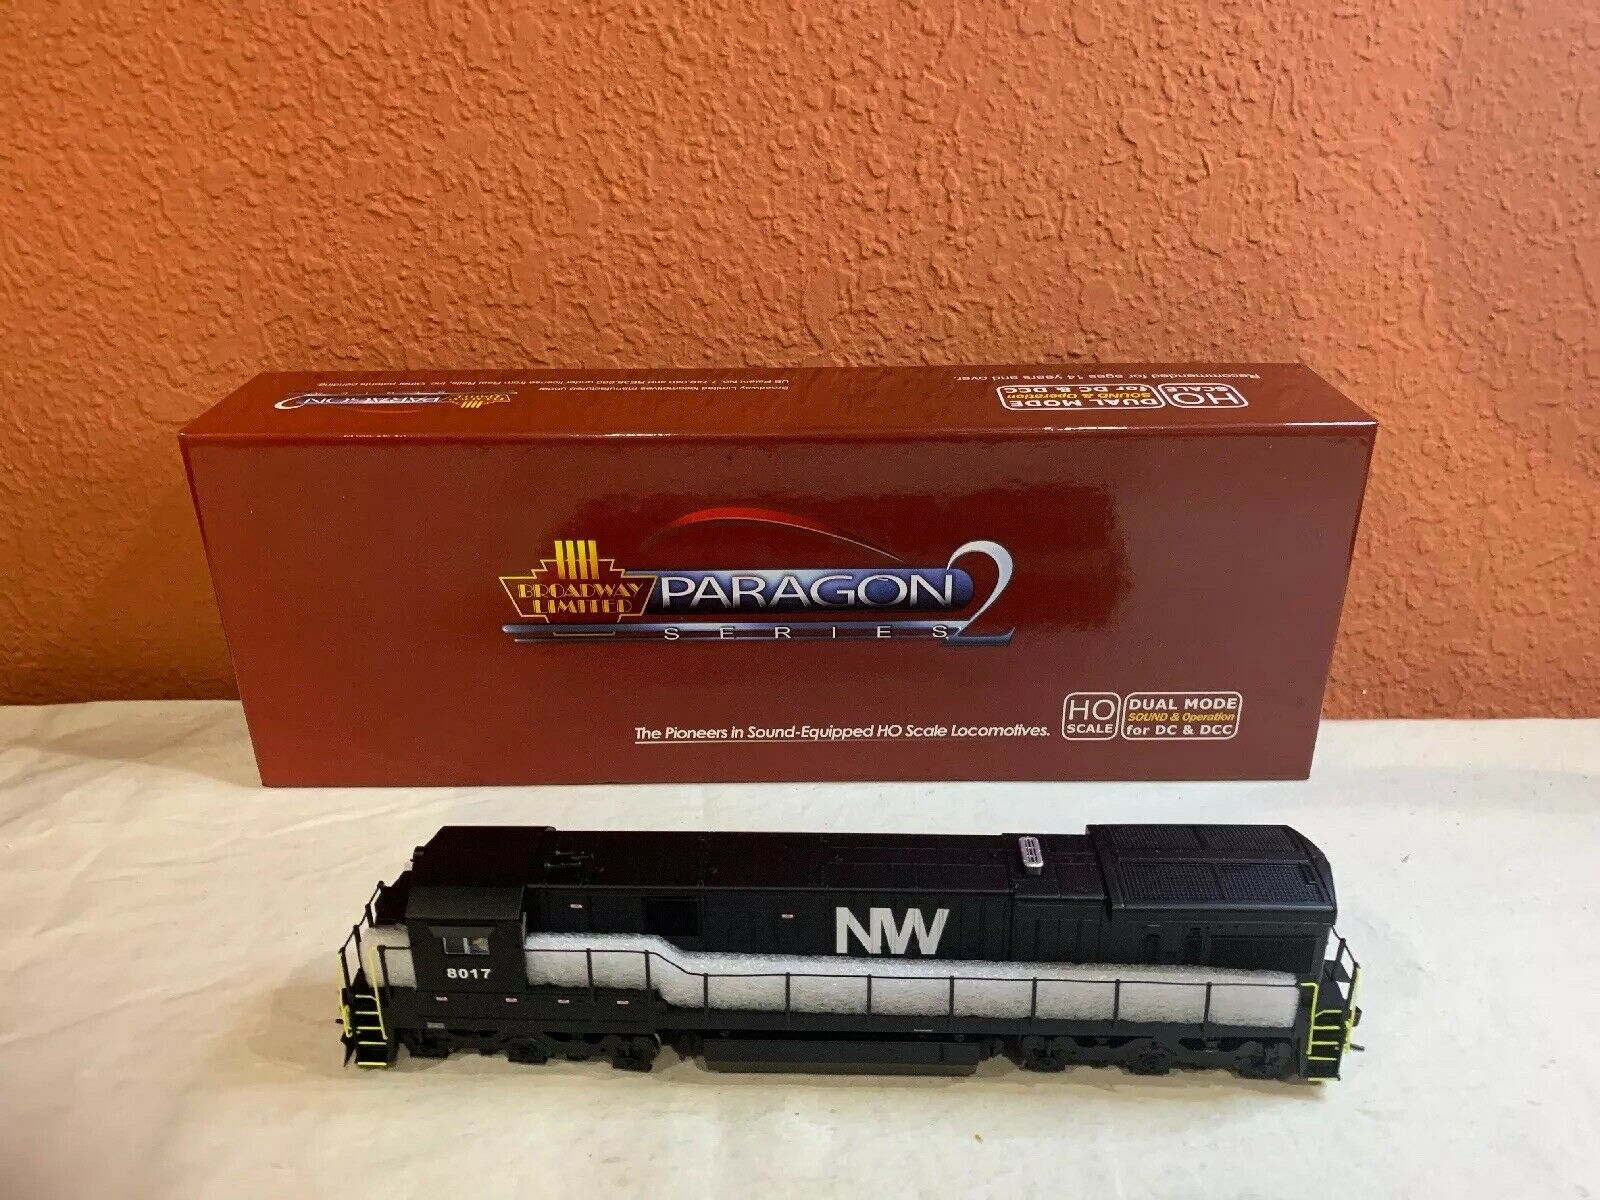 HO SCALE BLI PARAGON 2 2452 GE C30-7, N&W  8017 DCC EQUIPPED NEW.